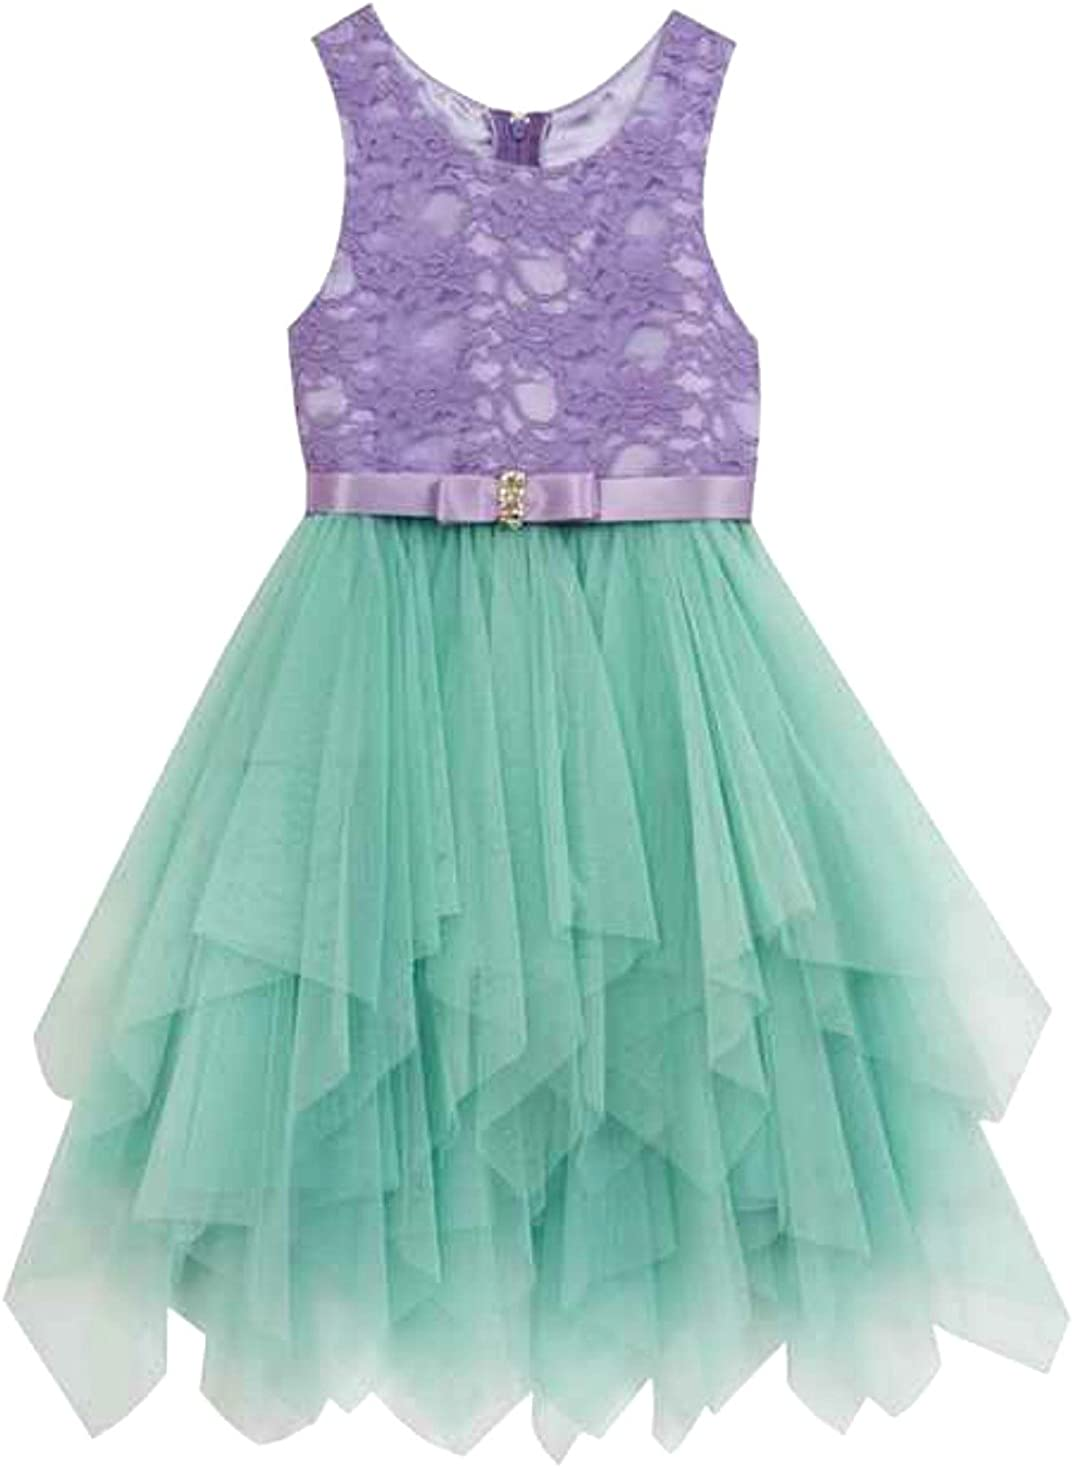 Rare Editions Girls Party Dress Purple Lace Mint Tulle Dress